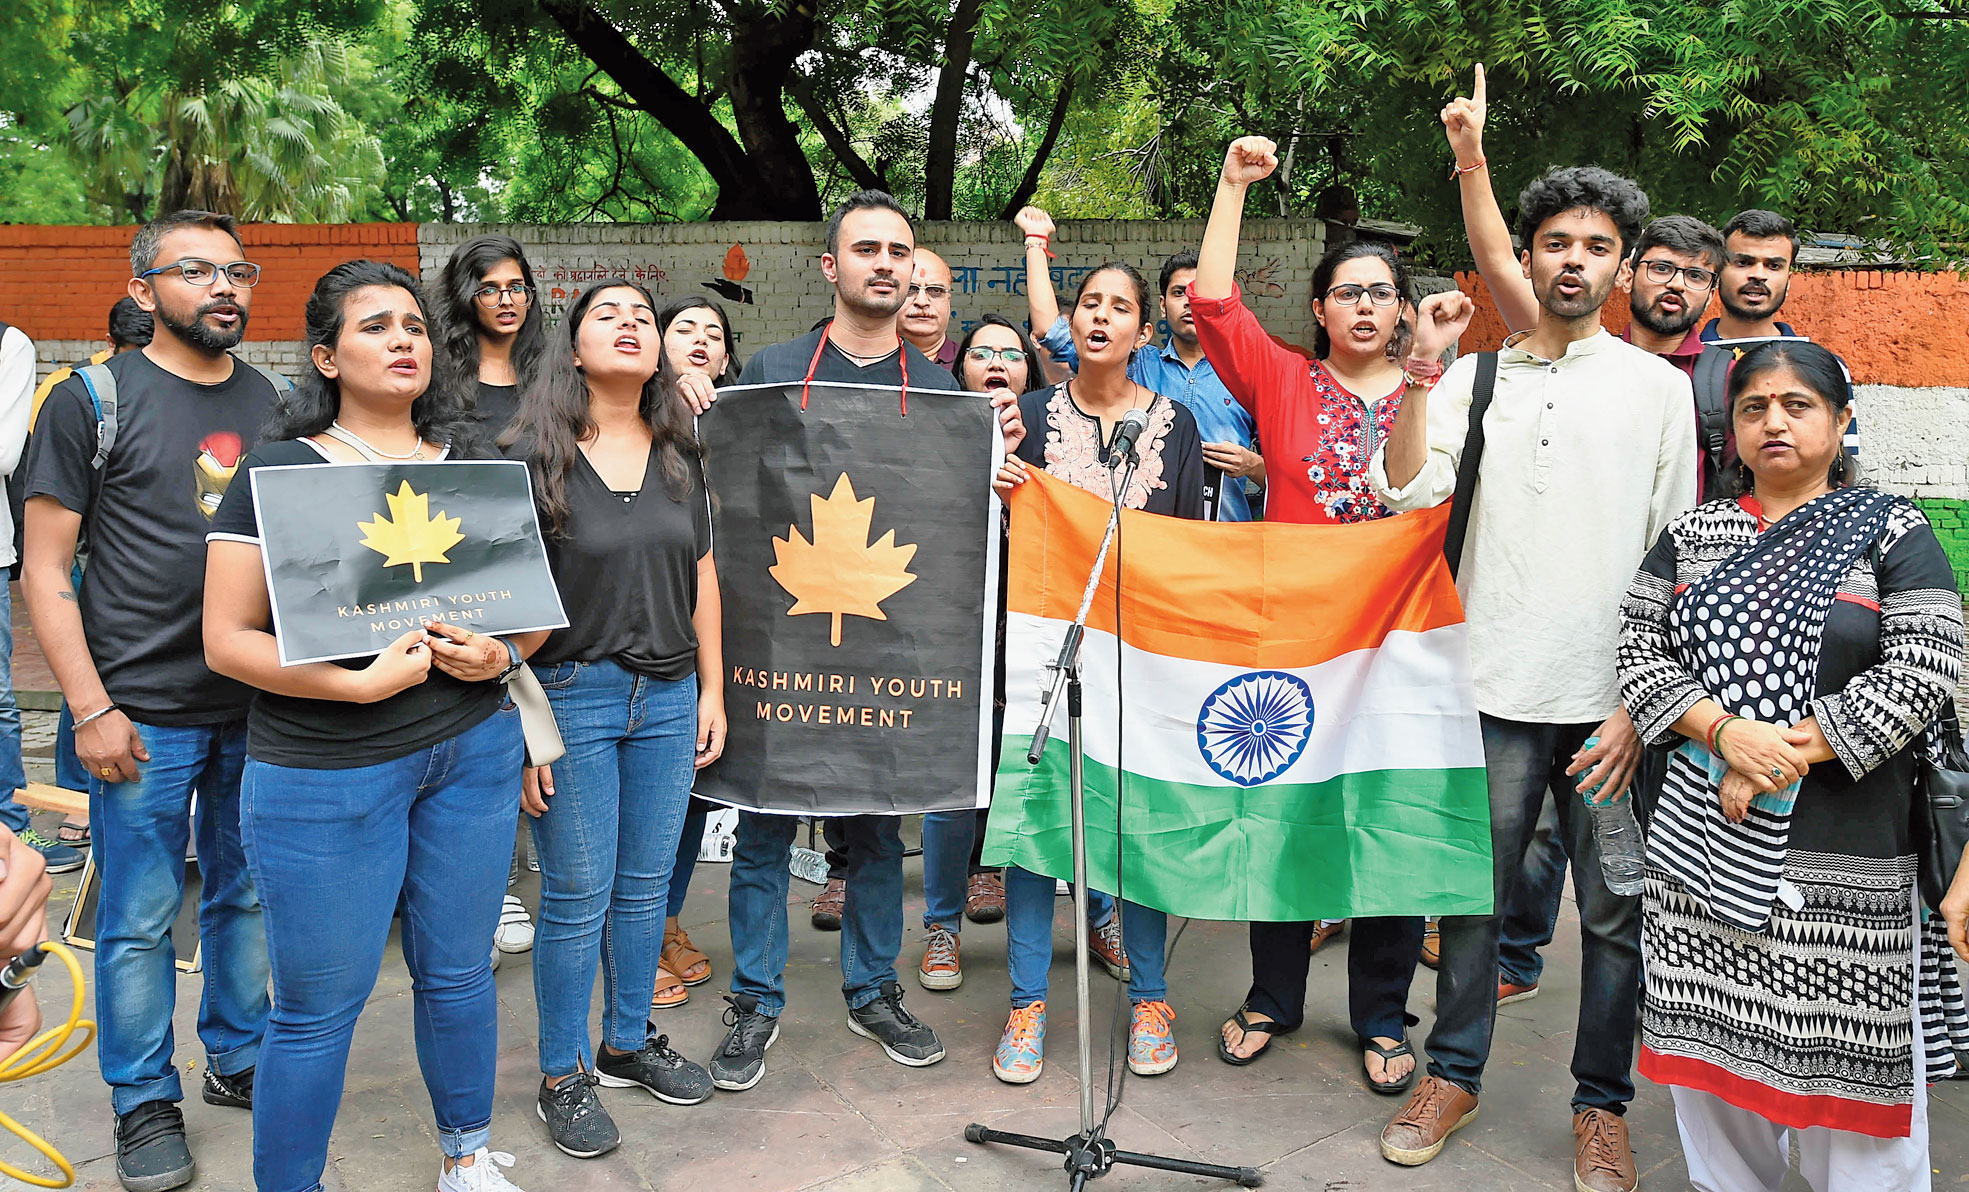 """Activists of Kashmiri Youth Movement express solidarity with the government for its decisions on Kashmir. (Prem Singh) An earlier version of the caption was incomplete. It had said """"activists of the Kashmiri Youth Movement express solidarity with Kashmir at an event in New Delhi on Sunday"""". It gave"""